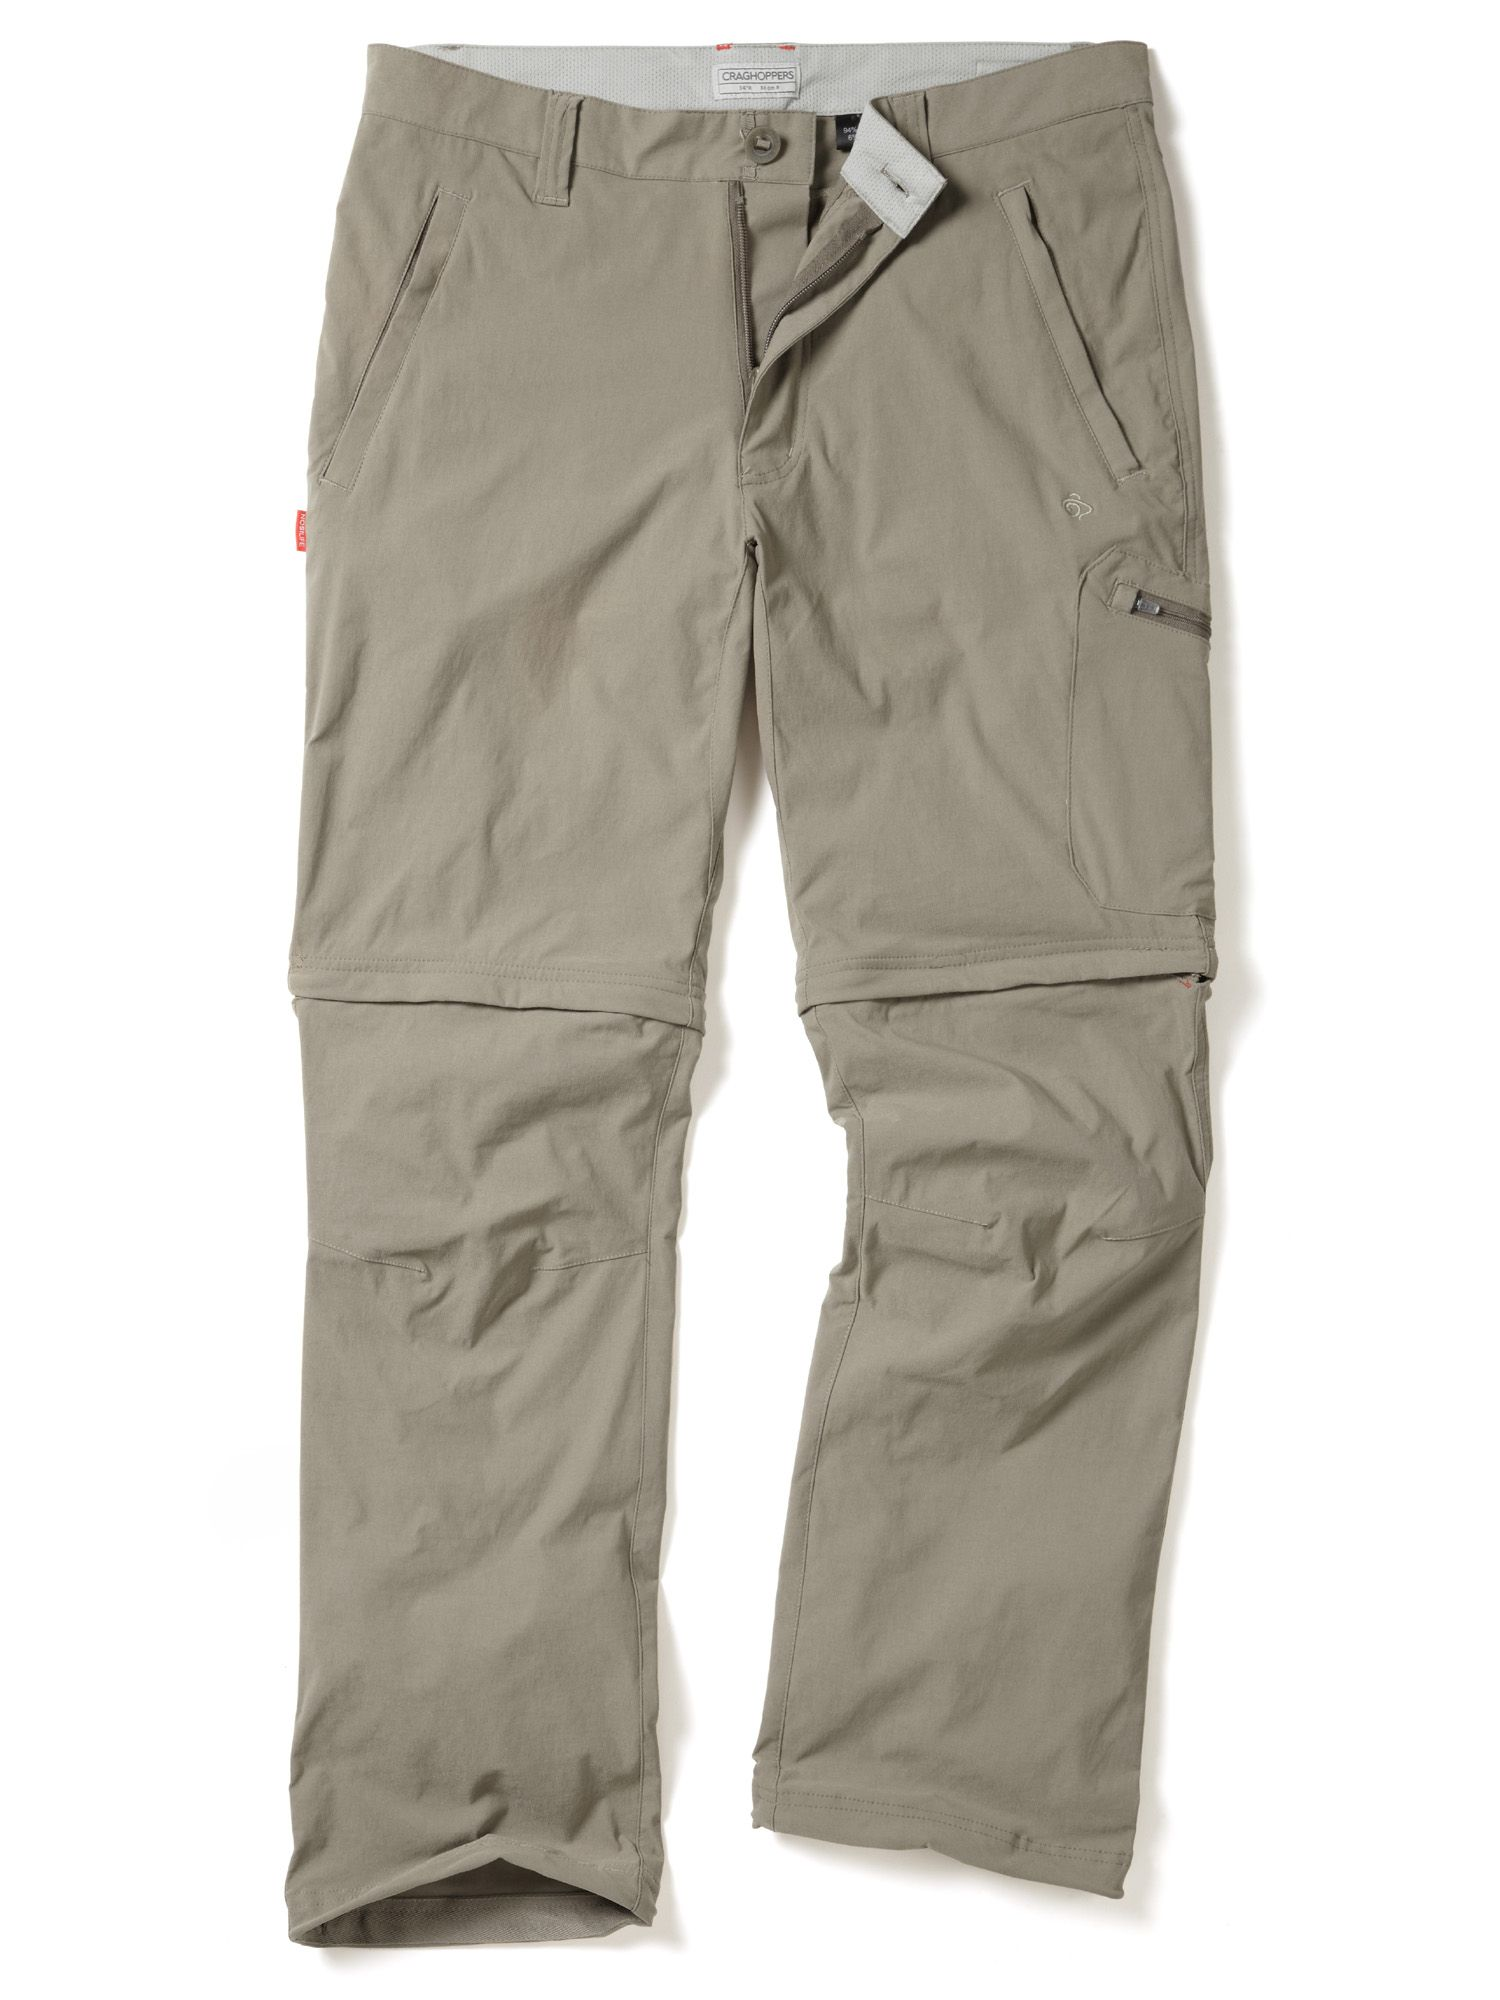 Mens Craghoppers NosiLife Pro Convertible Trousers Beige